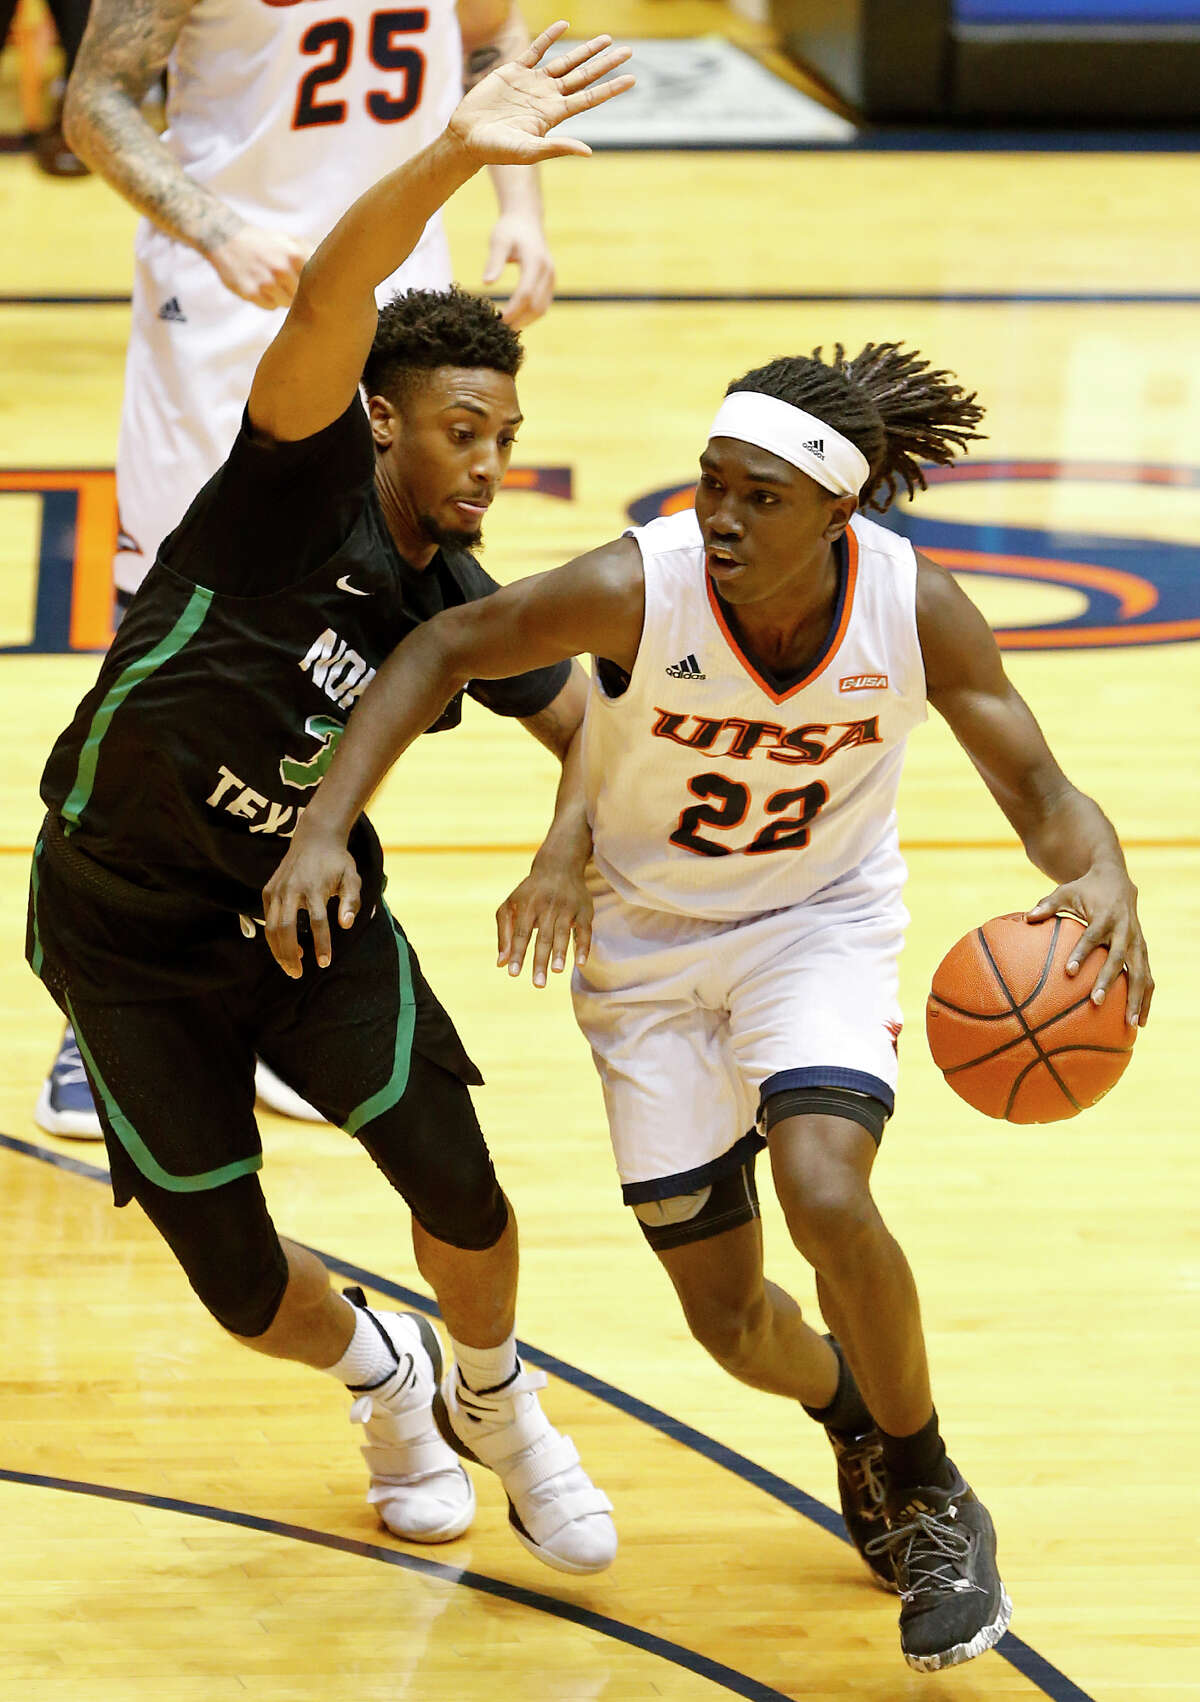 UTSA guard Keaton Wallace (22) looks for room around North Texas guard Roosevelt Smart (3) during first half action Saturday Dec. 30, 2017 at the UTSA Convocation Center.